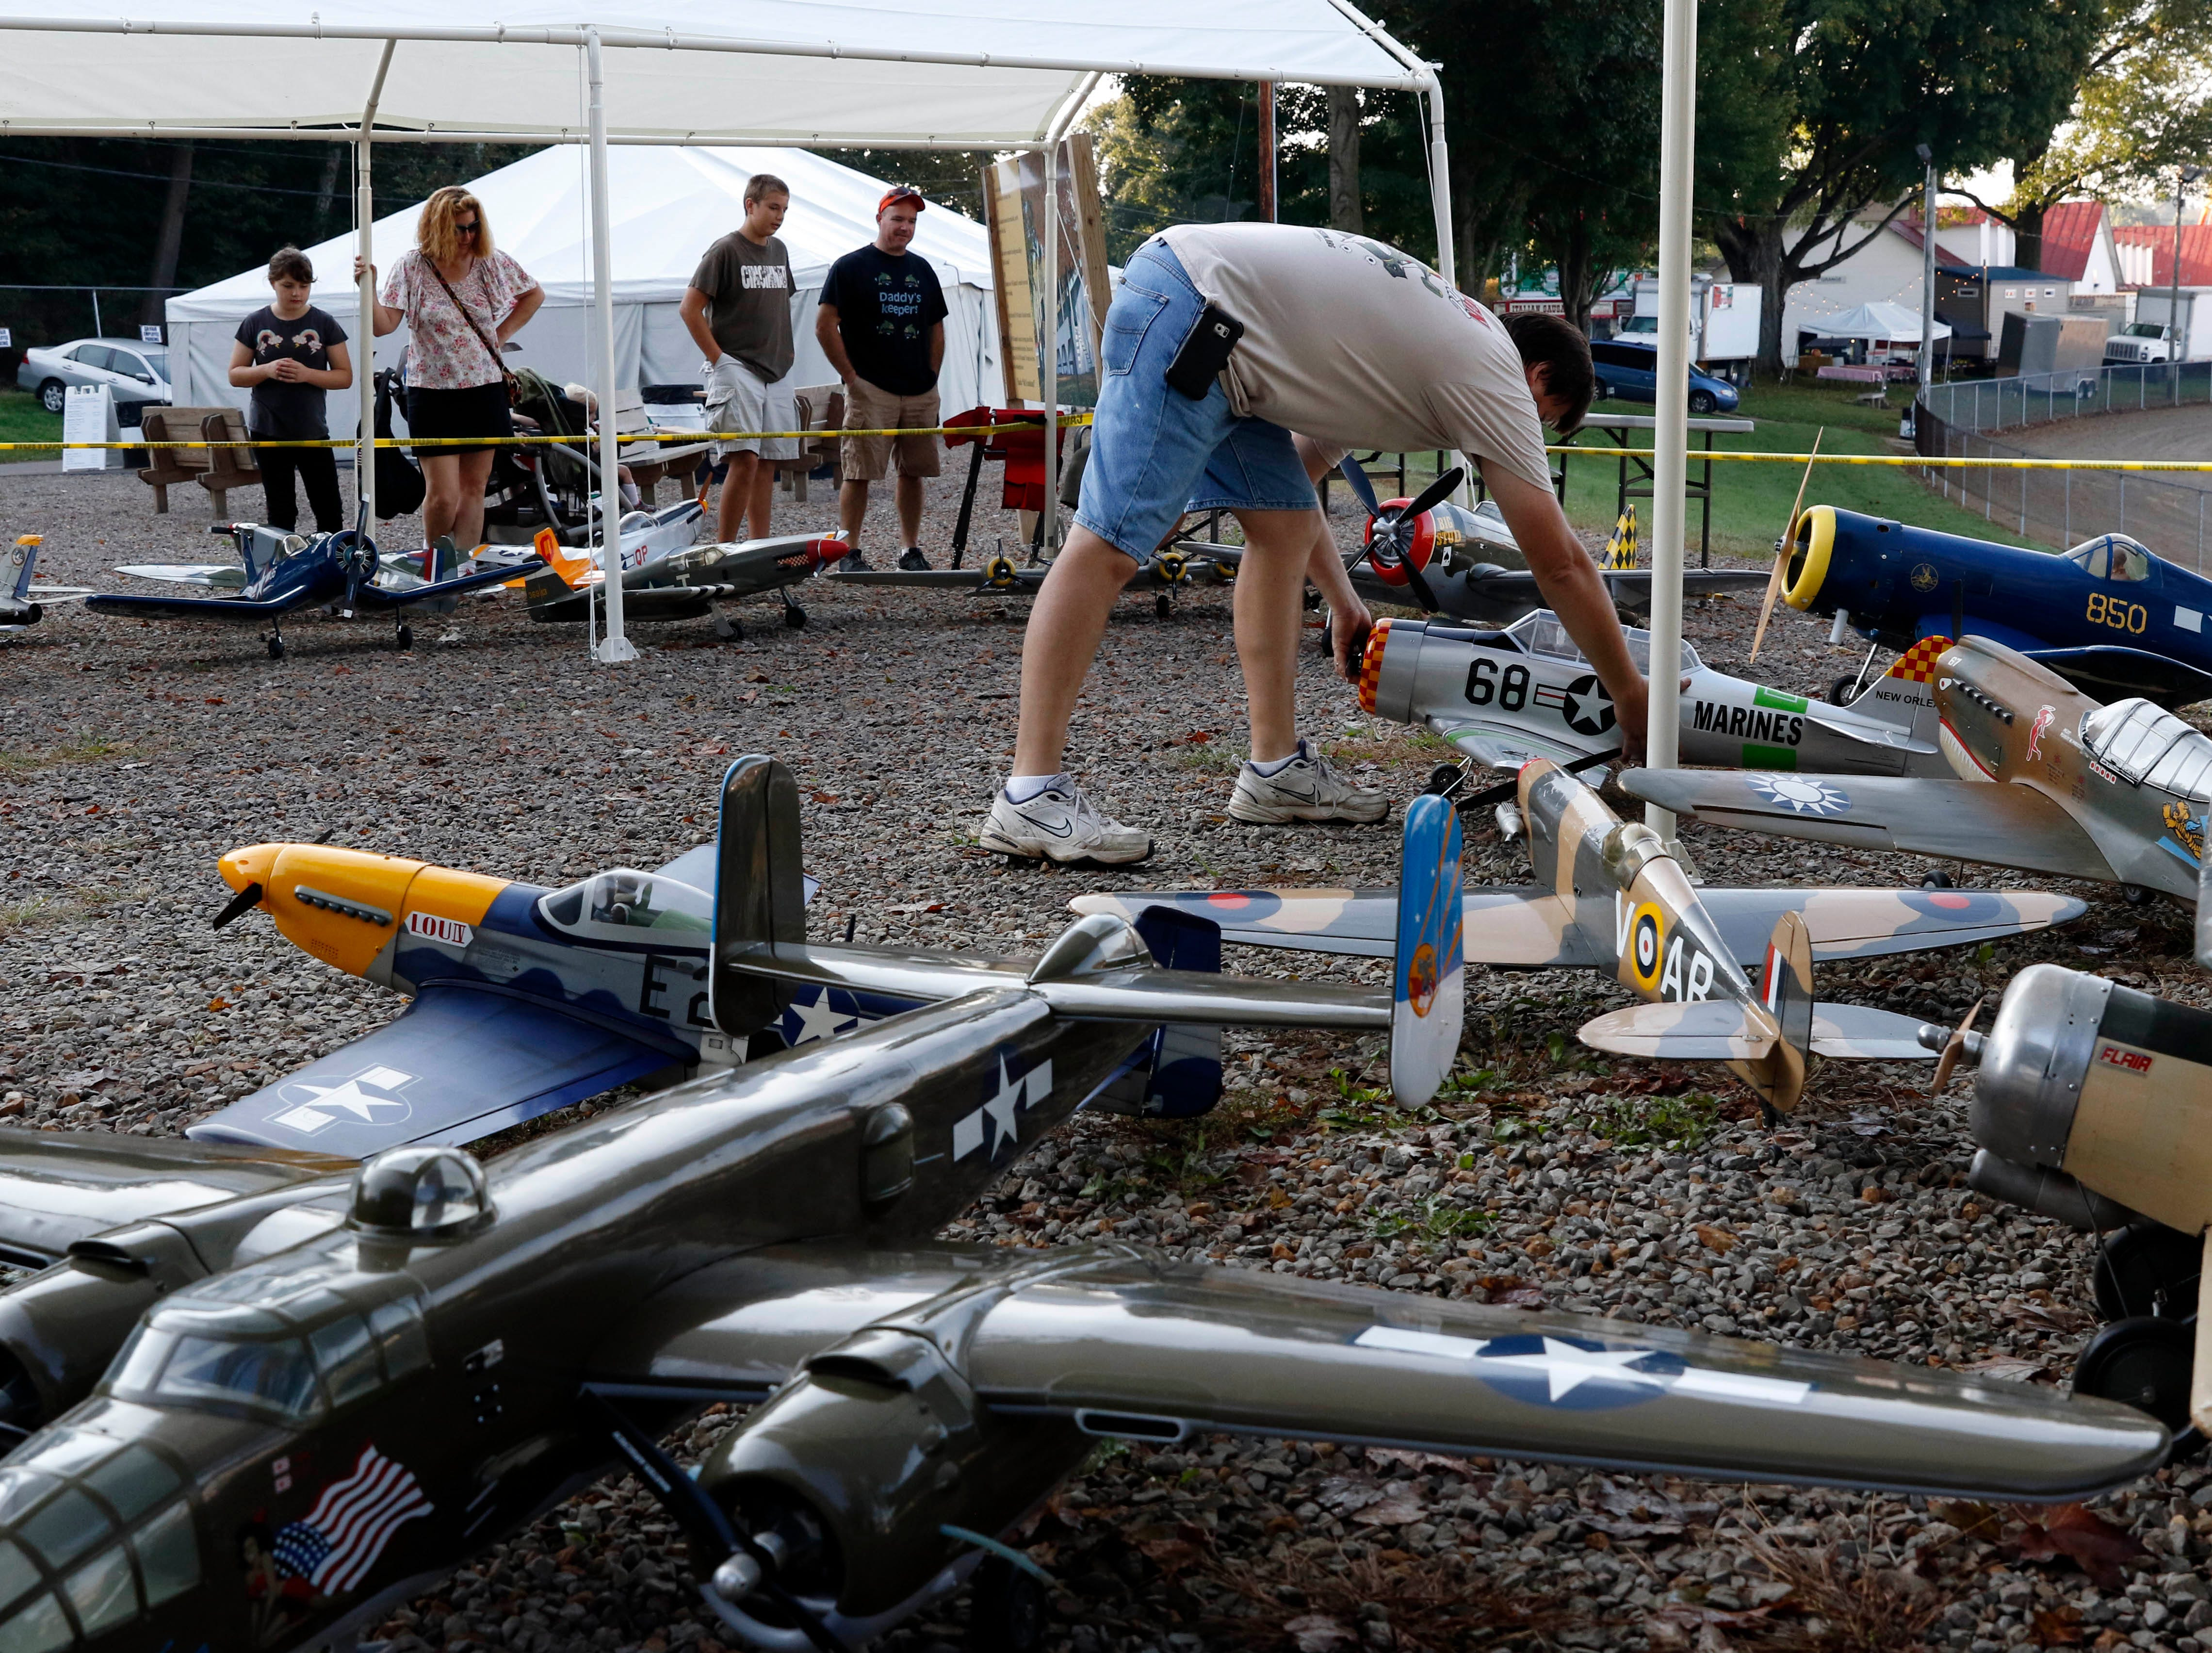 Jamie Thimmes, sets up radio controlled airplanes Monday morning at the Fairfield County Fair in Lancaster. Thimmes and other members of the Flying FORKS (Fairfield Ohio Radio Kontrol Society) were setting up dozens miltary model planes for Veterans Day.